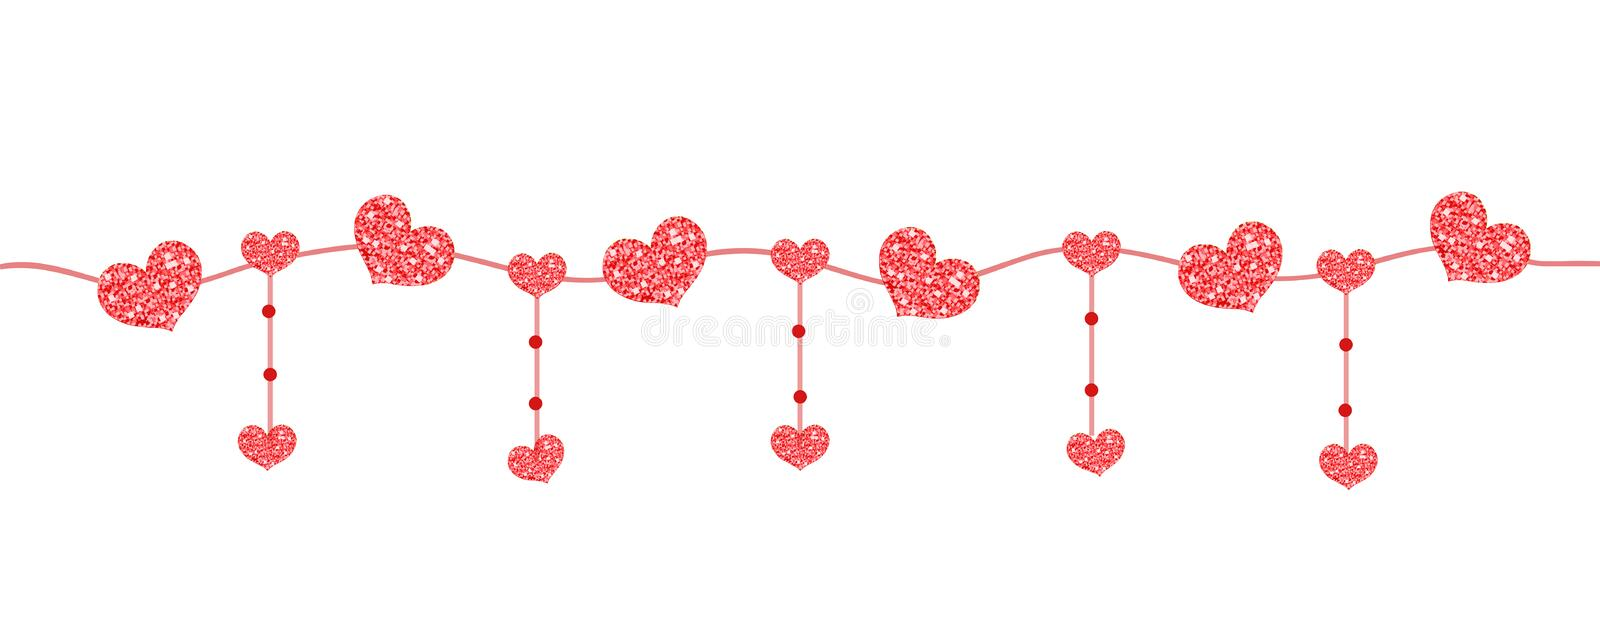 Happy Valentine`s day banner with hearts made of glitter. Brilliant horizontal borders. Romantic shining sparkling vector illustration